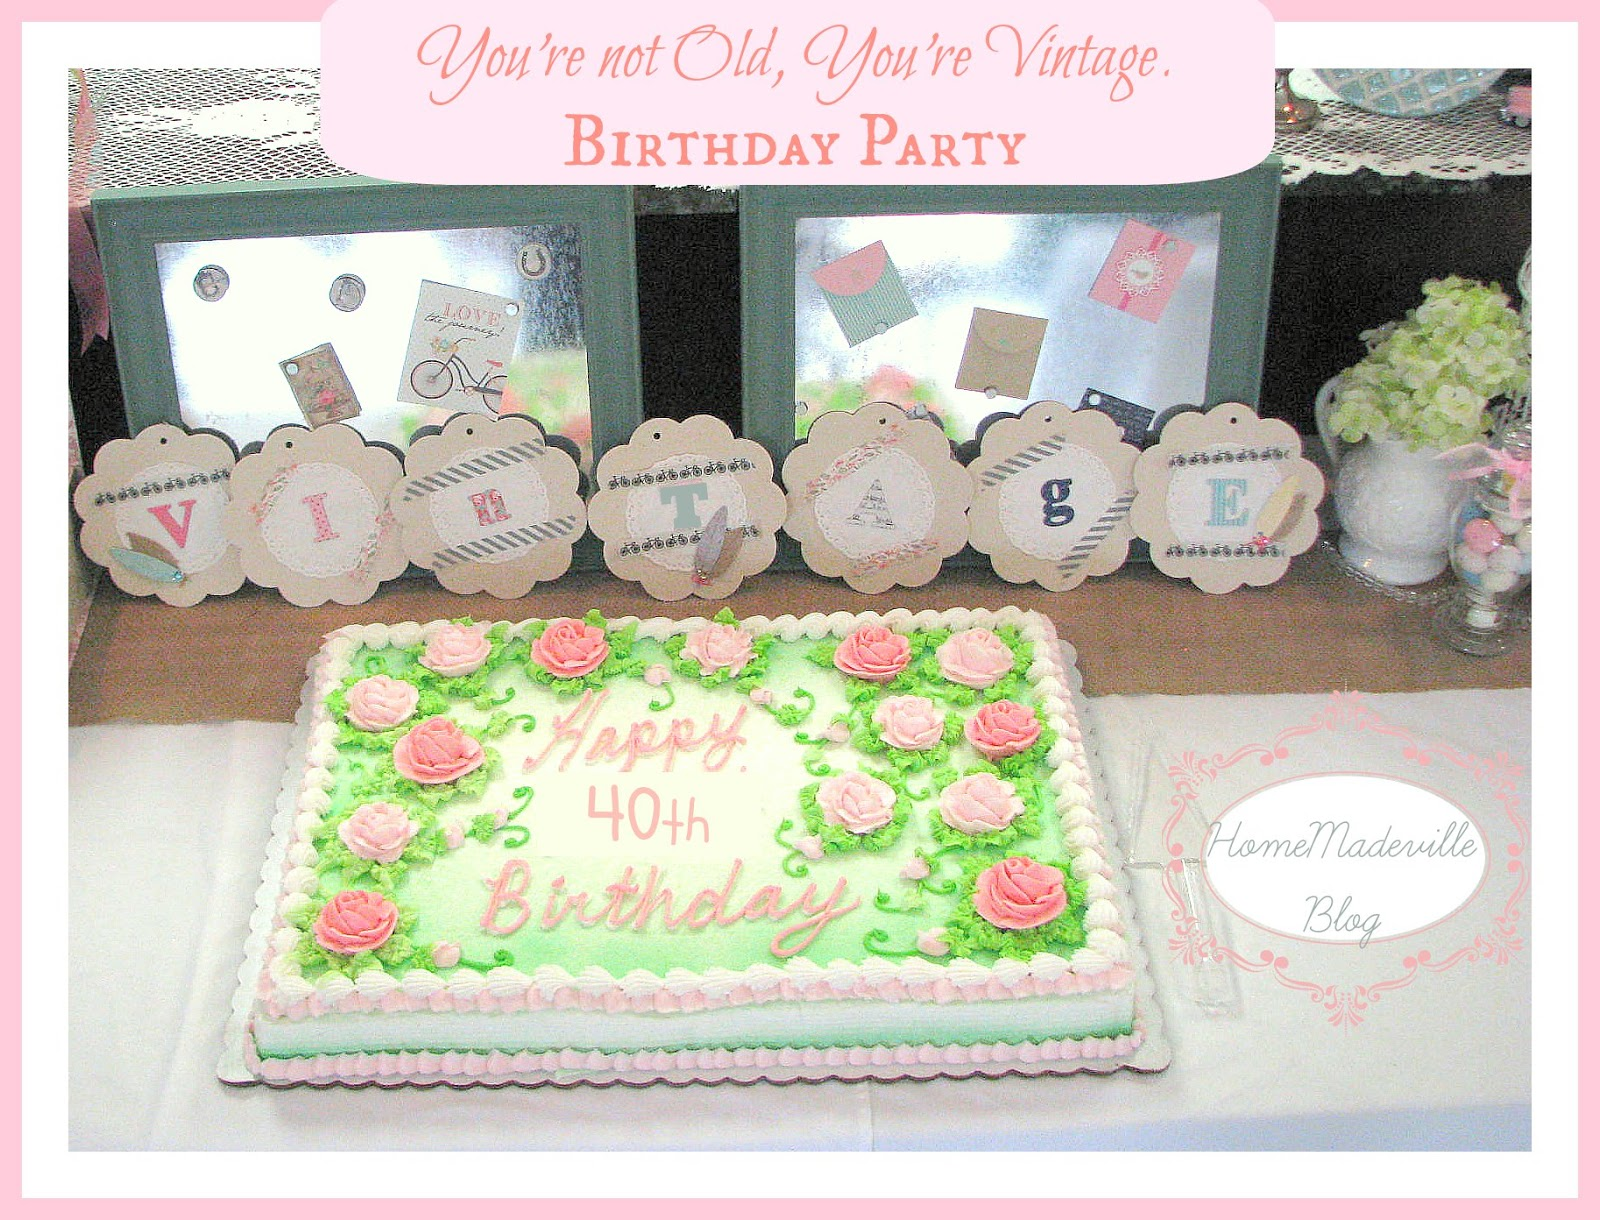 Homemadeville your place for homemade inspiration for Homemade birthday decorations for adults